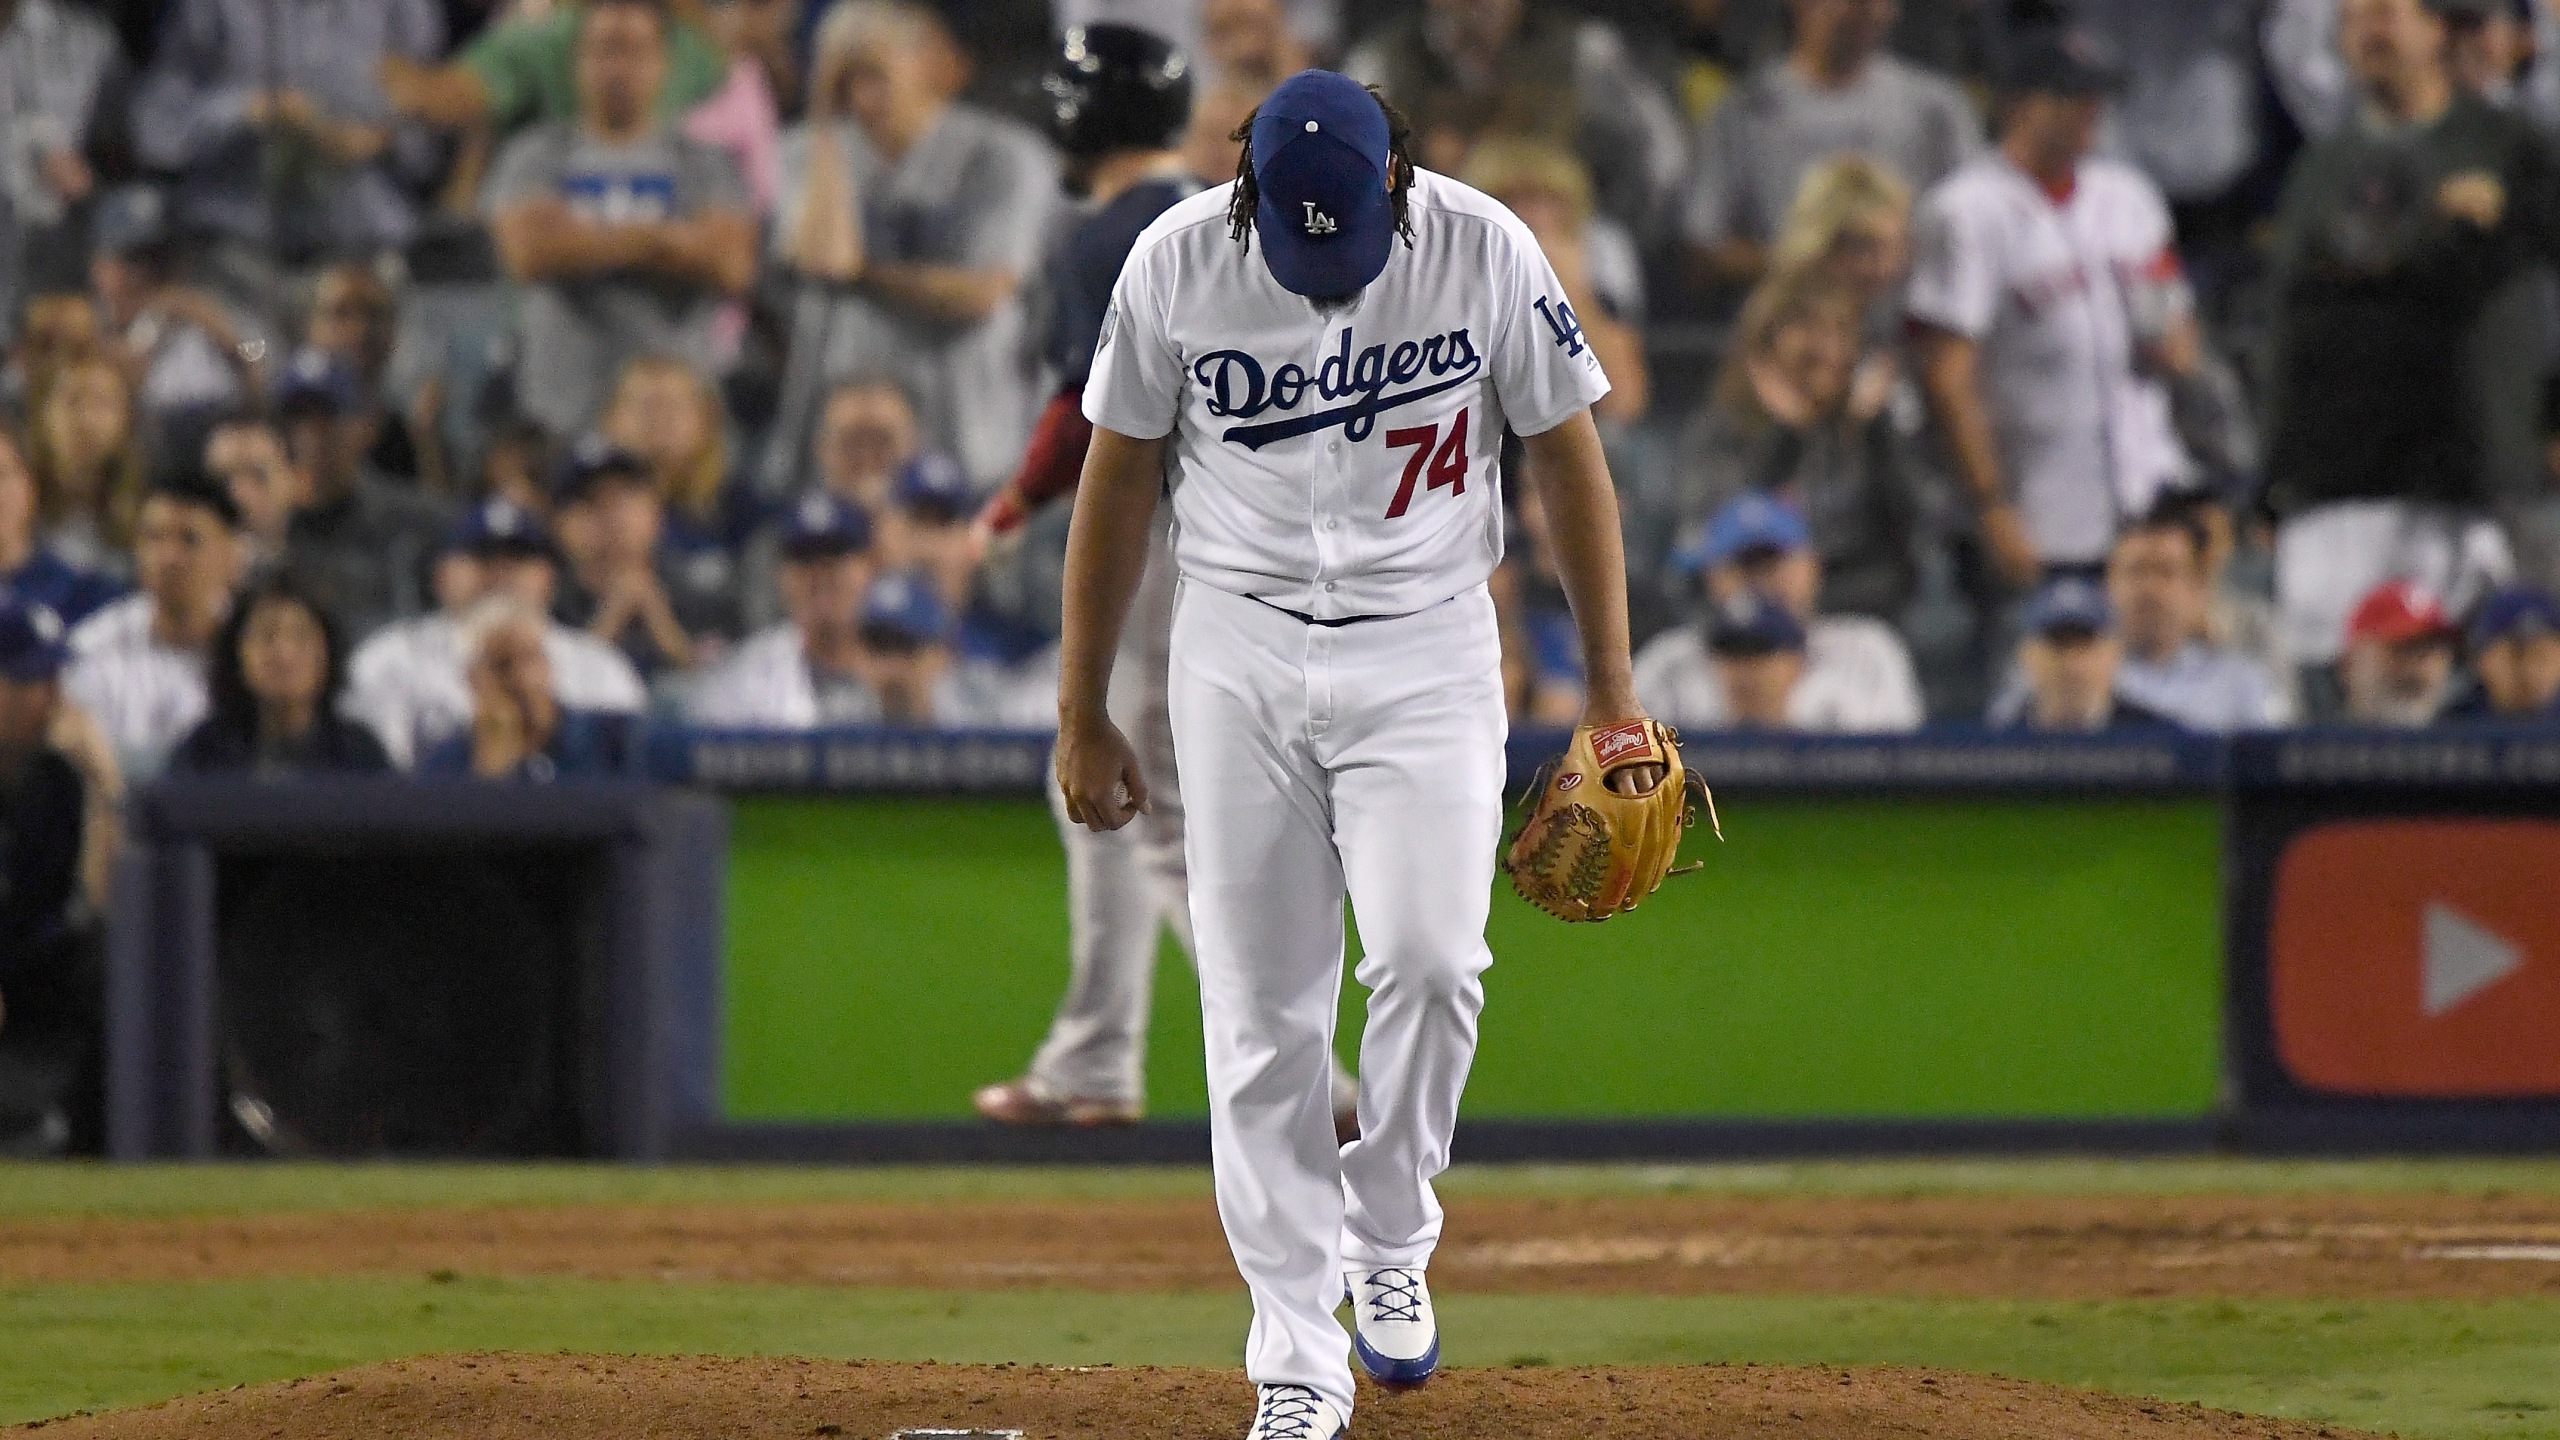 Pitcher Kenley Jansen #74 of the Los Angeles Dodgers looks down at the mound after giving up a solo home run to tie the game at 4-4 to Steve Pearce #25 of the Boston Red Sox in the eighth inning of Game 4 of the 2018 World Series at Dodger Stadium on Oct. 27, 2018, in Los Angeles. (Credit: Kevork Djansezian/Getty Images)